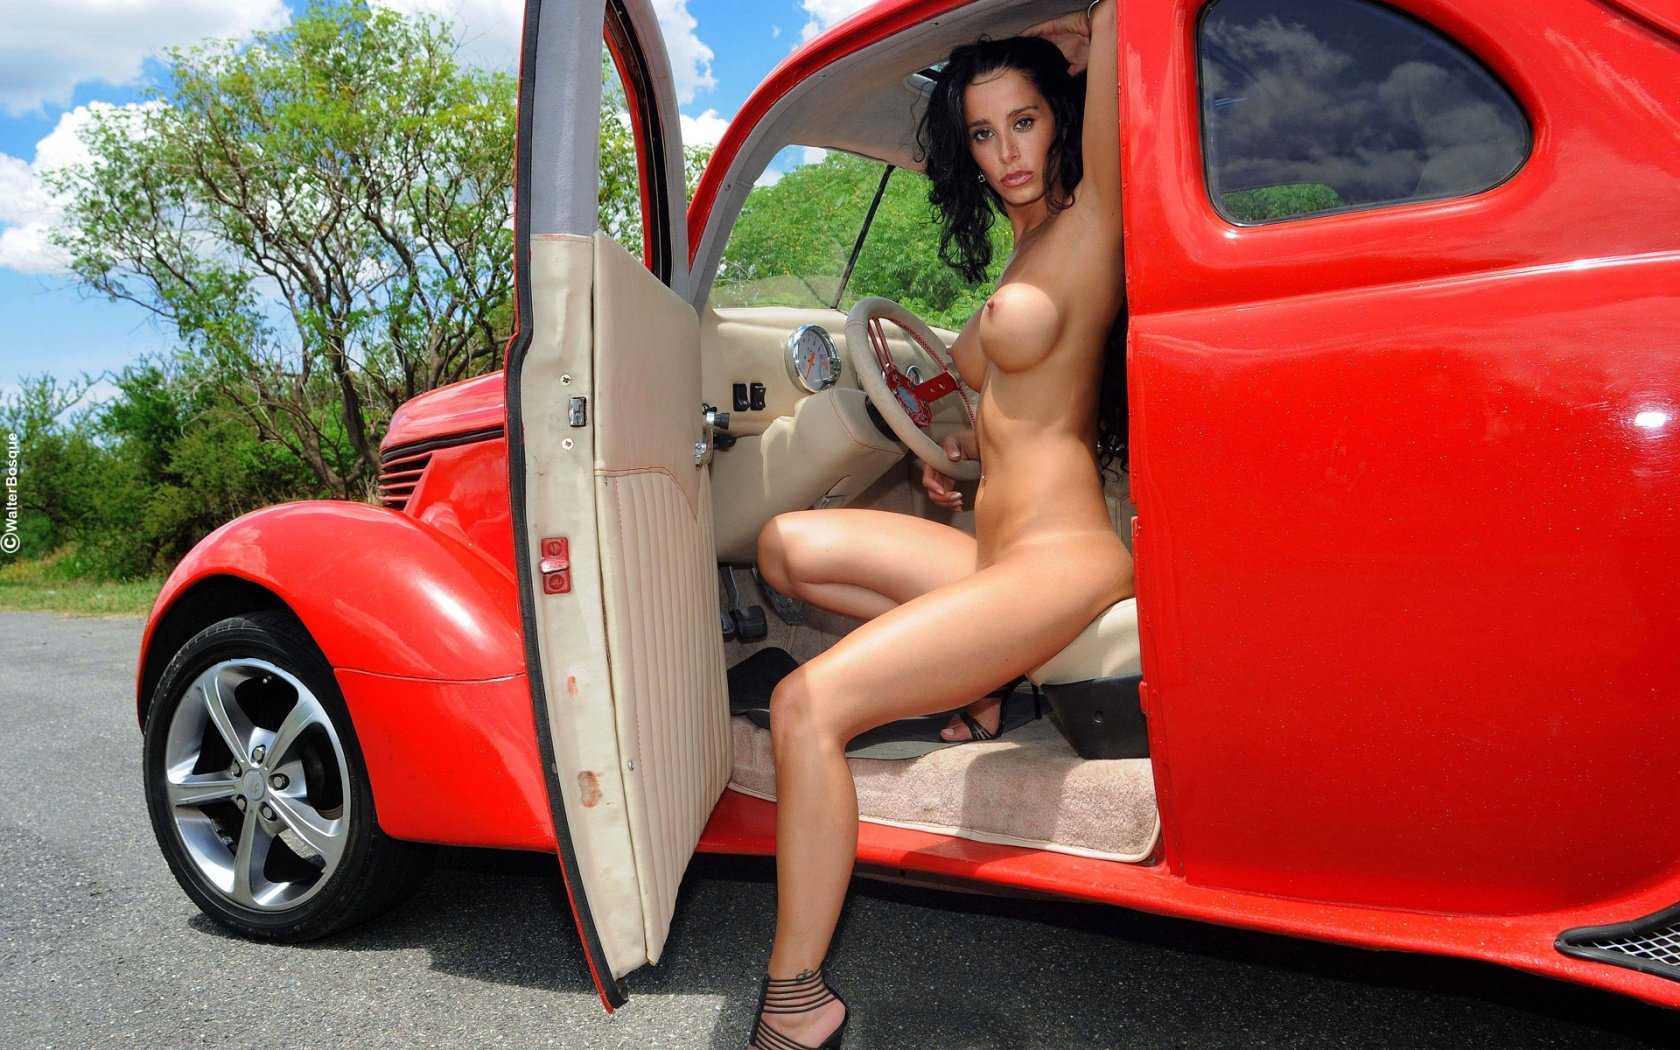 Nude women with exotic cars #14